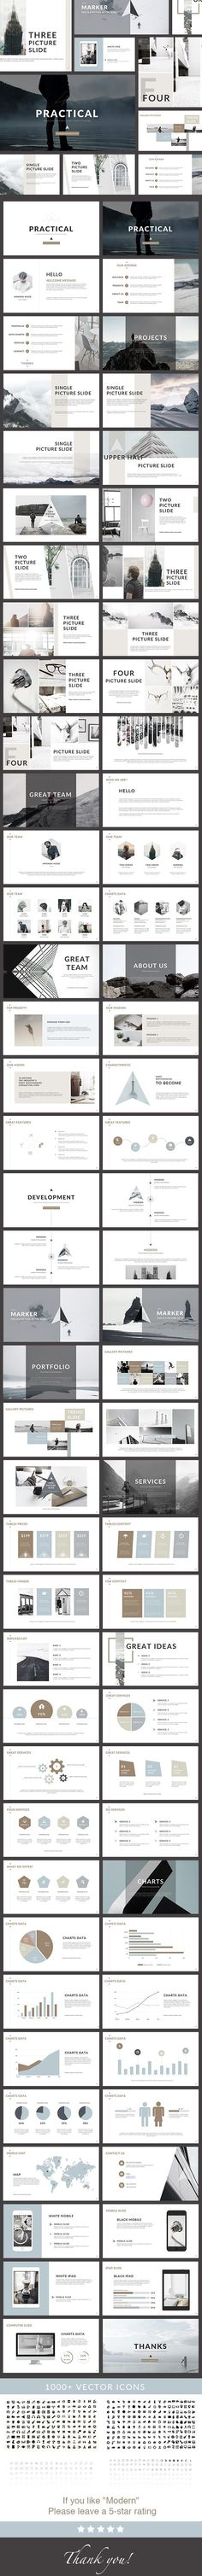 Practical - Clean PowerPoint Presentation Template. Download here: graphicriver.net/...